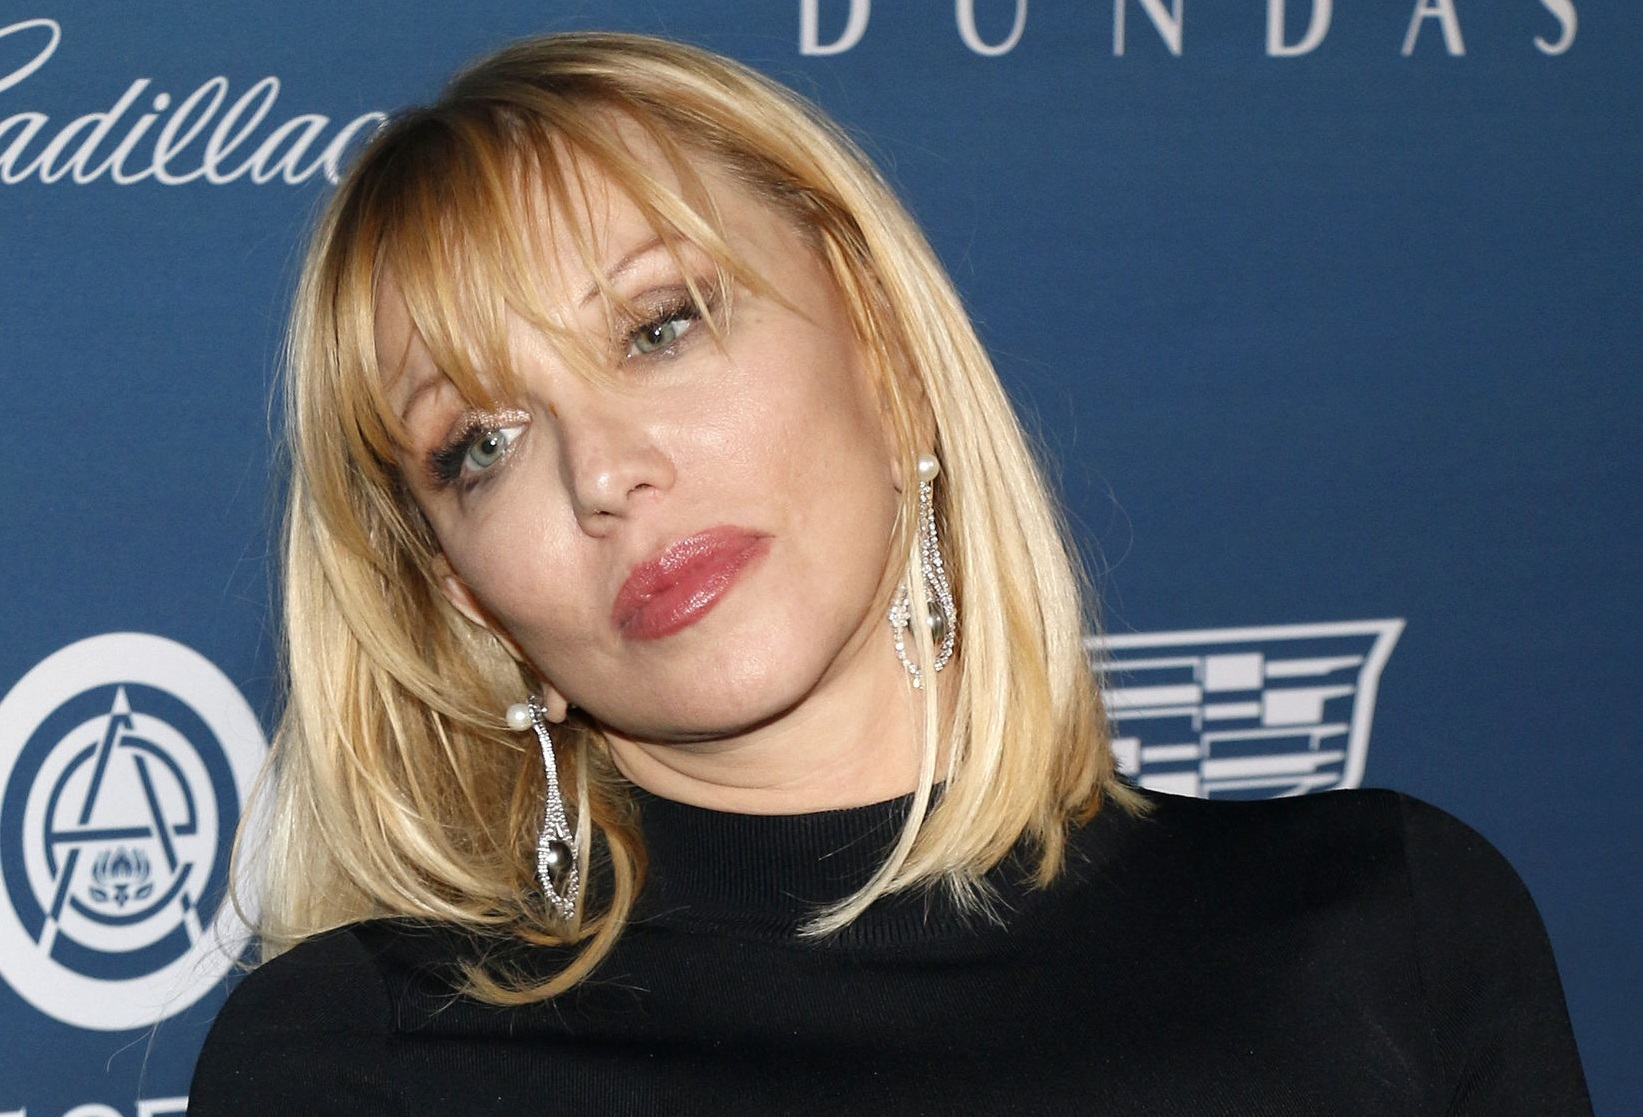 Prince Andrew visited Courtney Love 'looking for sex'